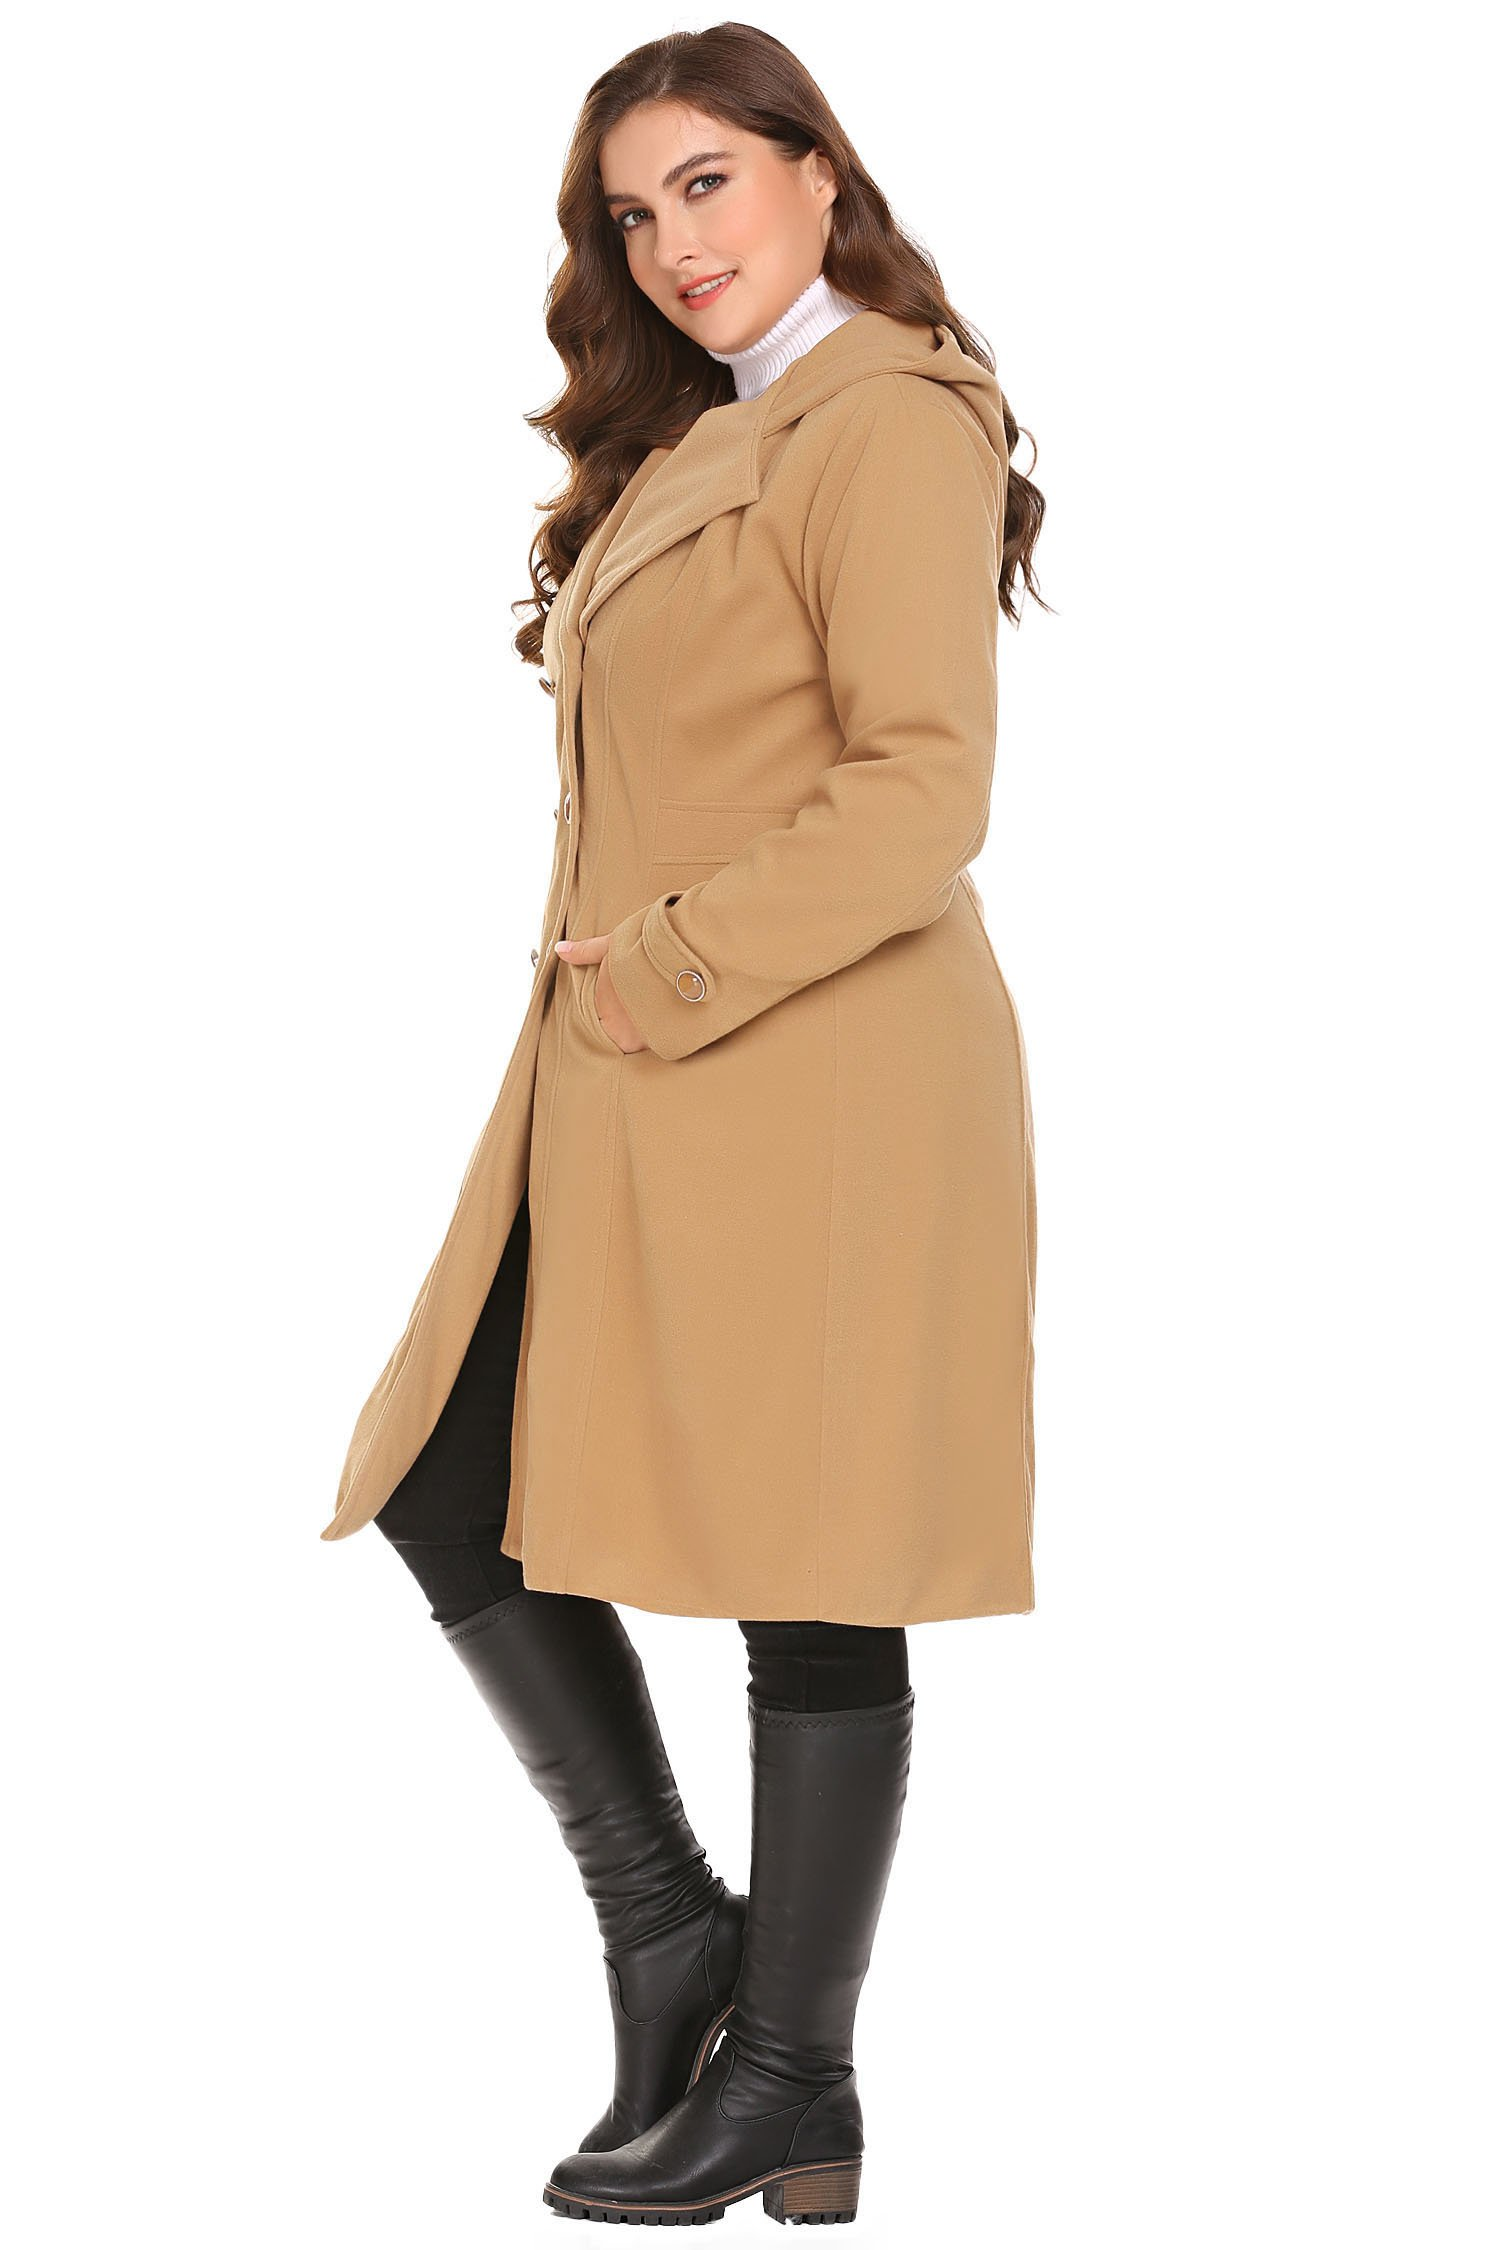 Zeagoo Women Plus Size Double Breasted Wool Elegant Long Lined Lightweight Trench Coat (16W-24W) by Zeagoo (Image #6)